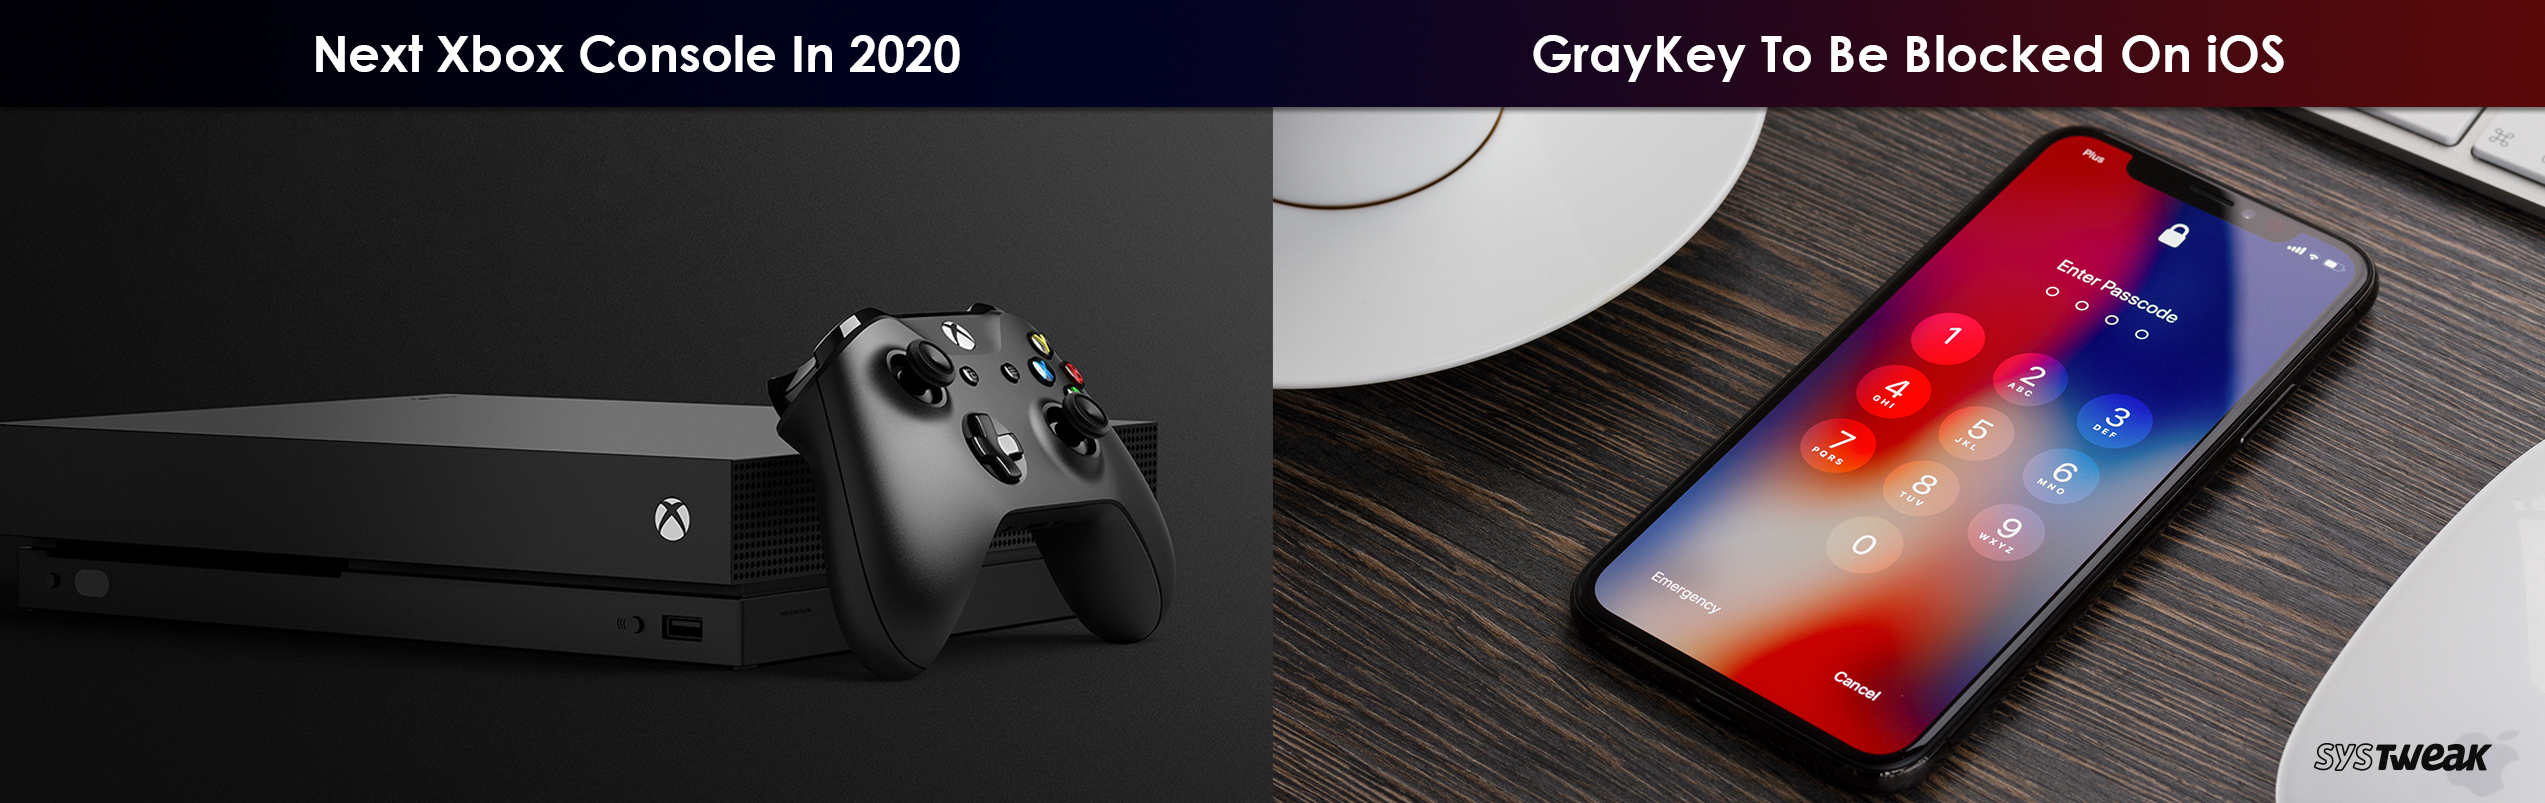 Newsletter: New Xbox Console Expected In 2020 & iOS Update ...